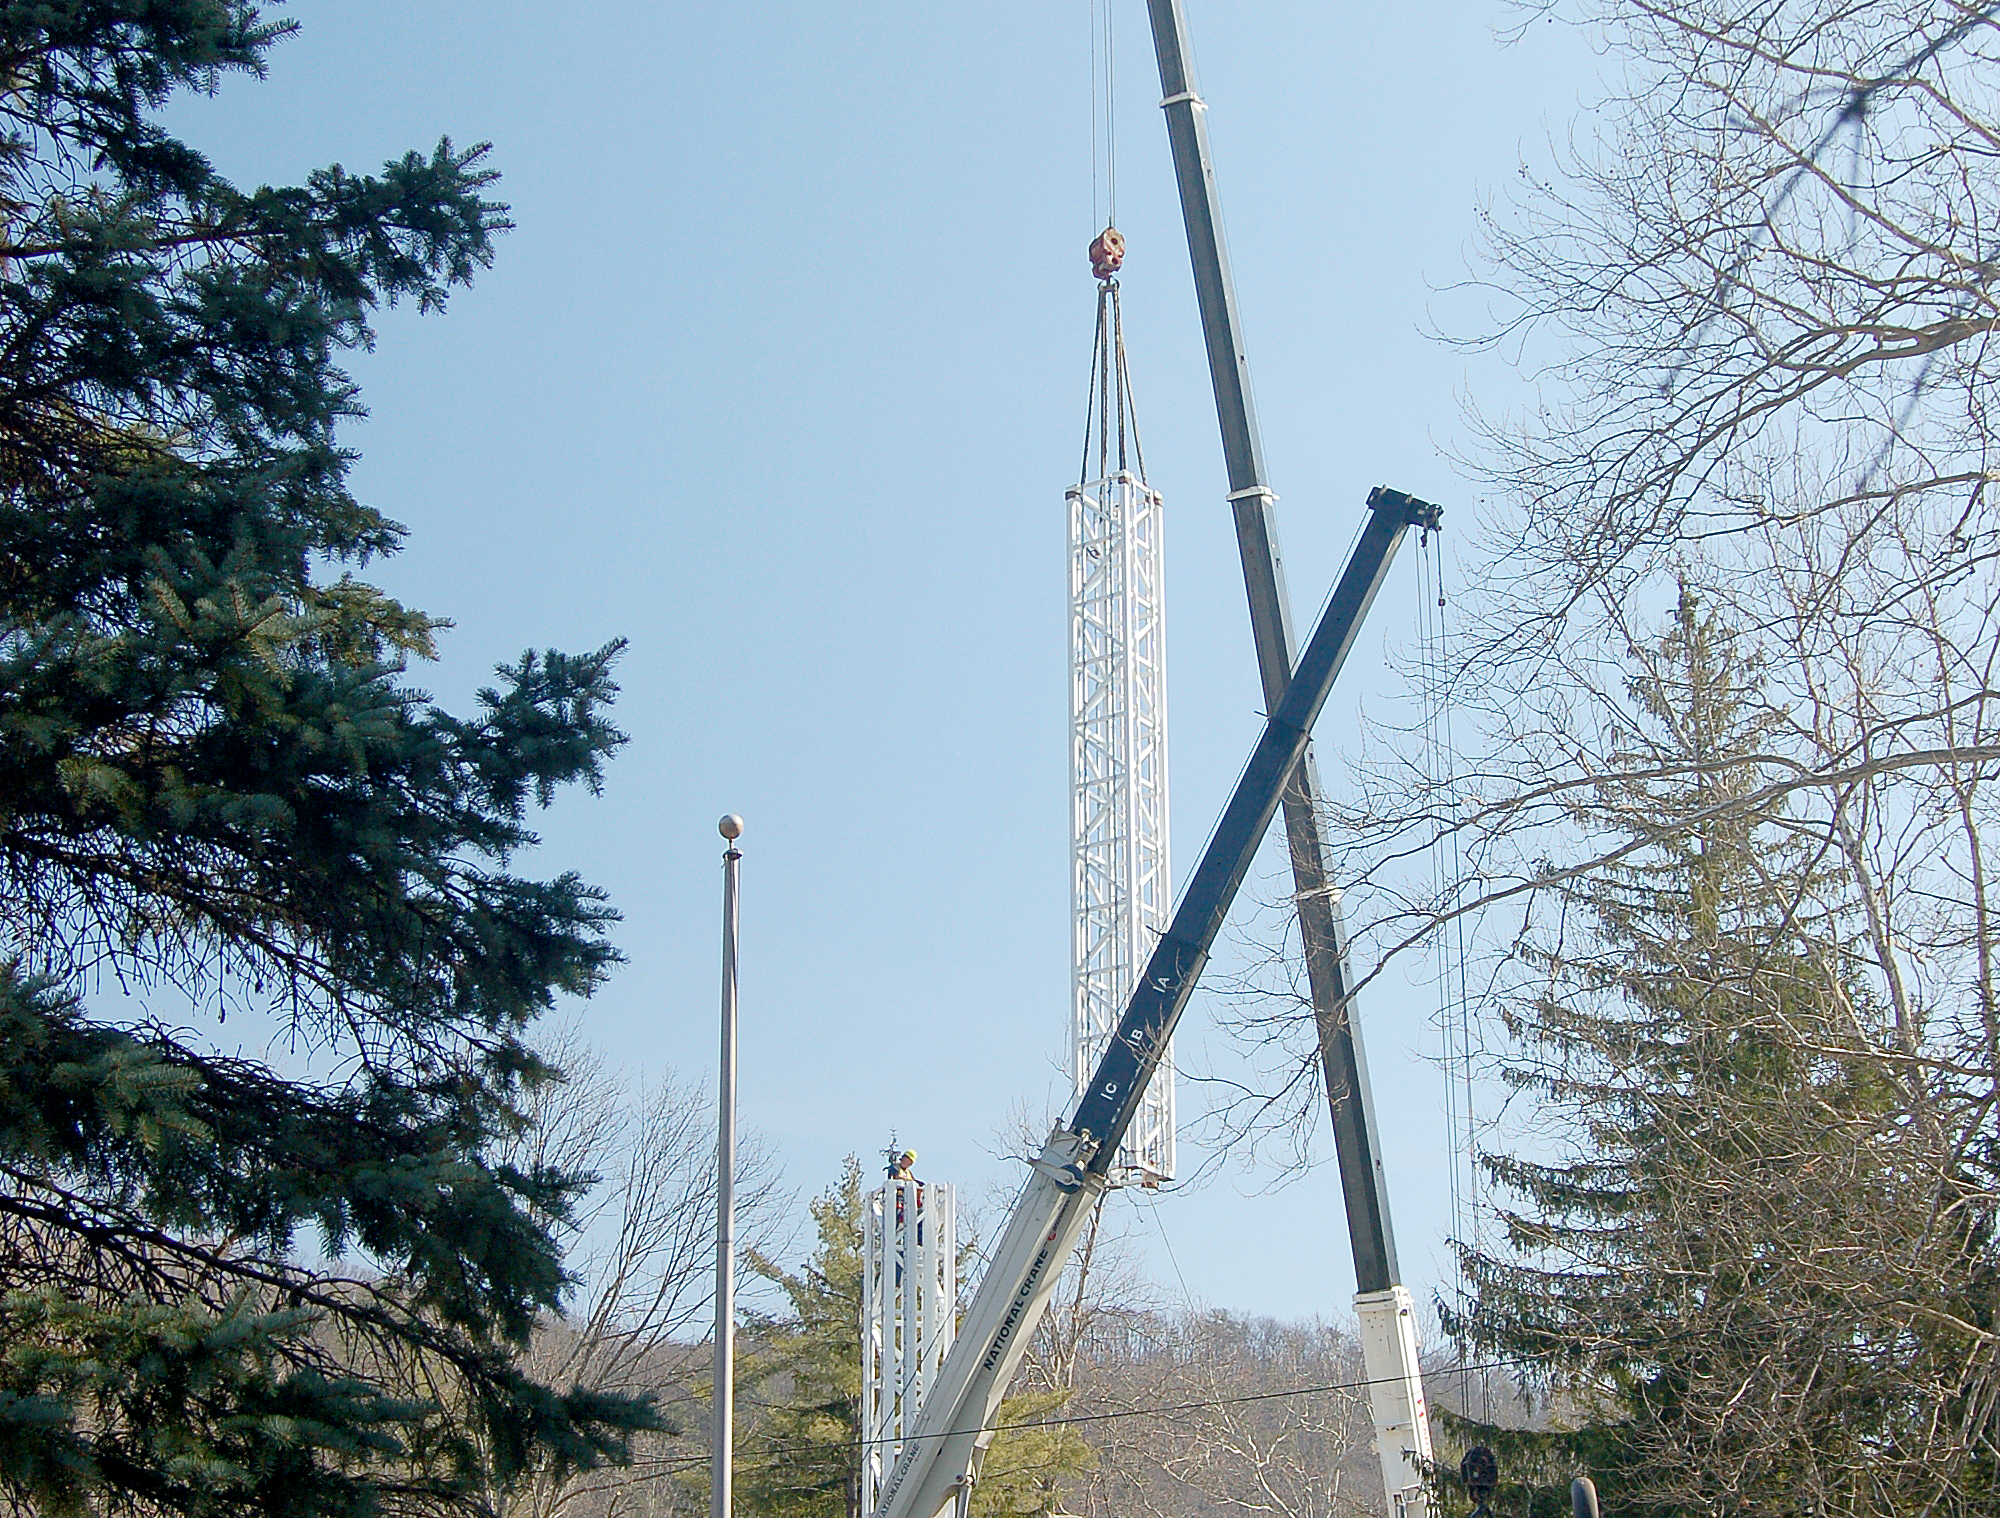 Part of the Stratos Fear is lifted into place at Knoebels Amusement Resort.